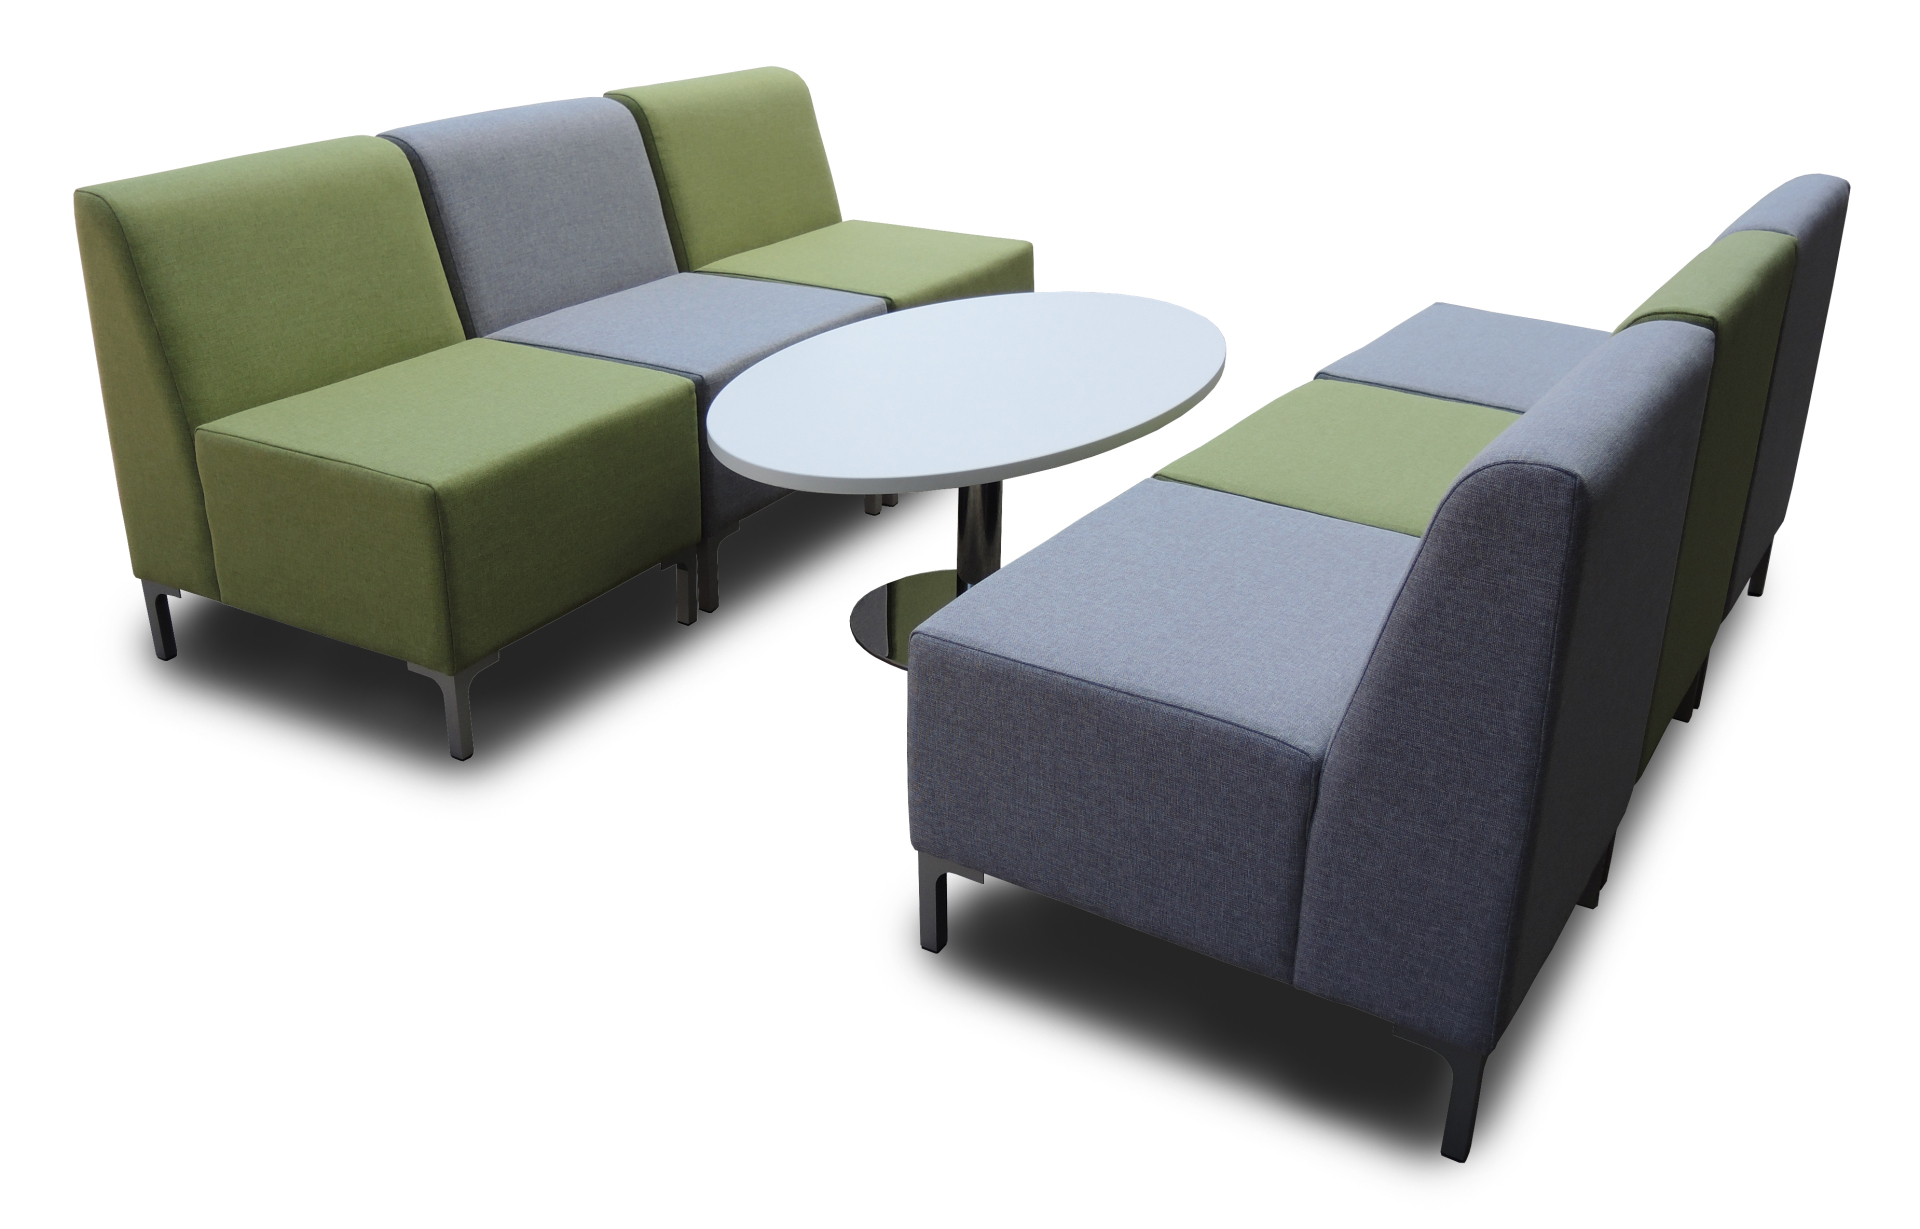 Direct Ergonomics | Sydney Office Furniture | Ergonomic Furniture | Collaborative Seating | Waiting Lounges | Waiting Room Seating | Ergonomic Seating | Rumi Flo